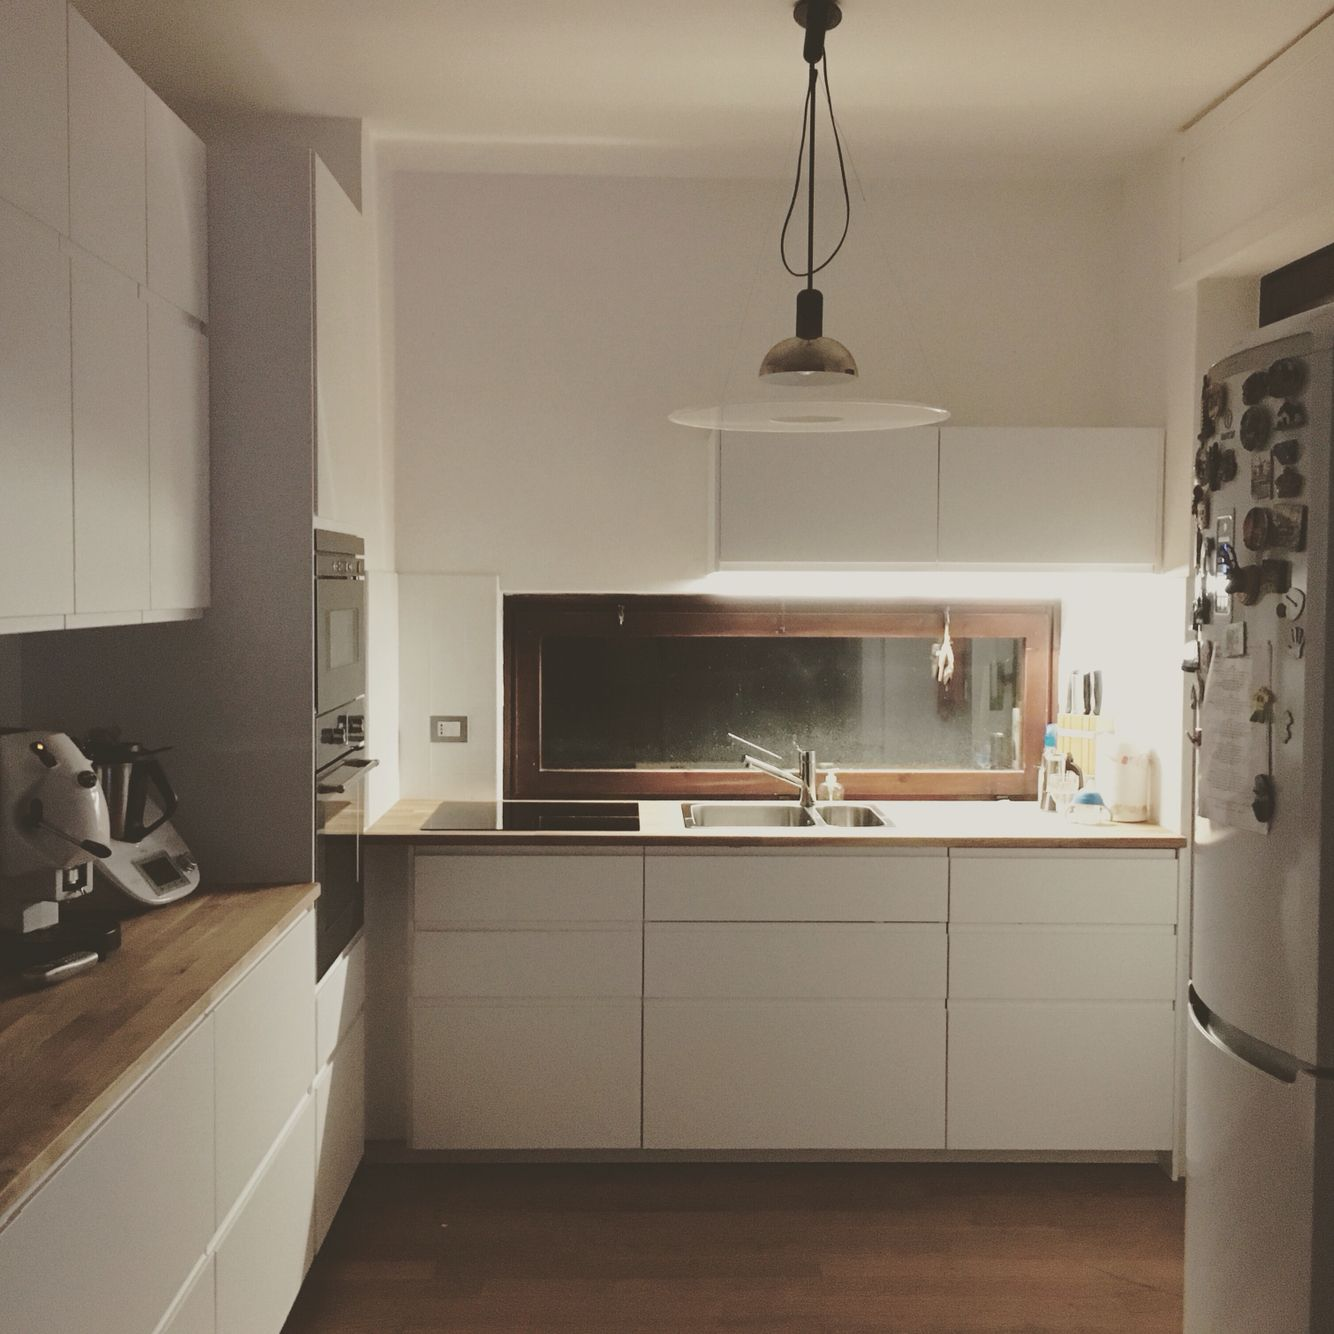 My brand new kitchen white kitchen ikea voxtorp wood home nordic home sweet home - Witte steen leroy merlin ...